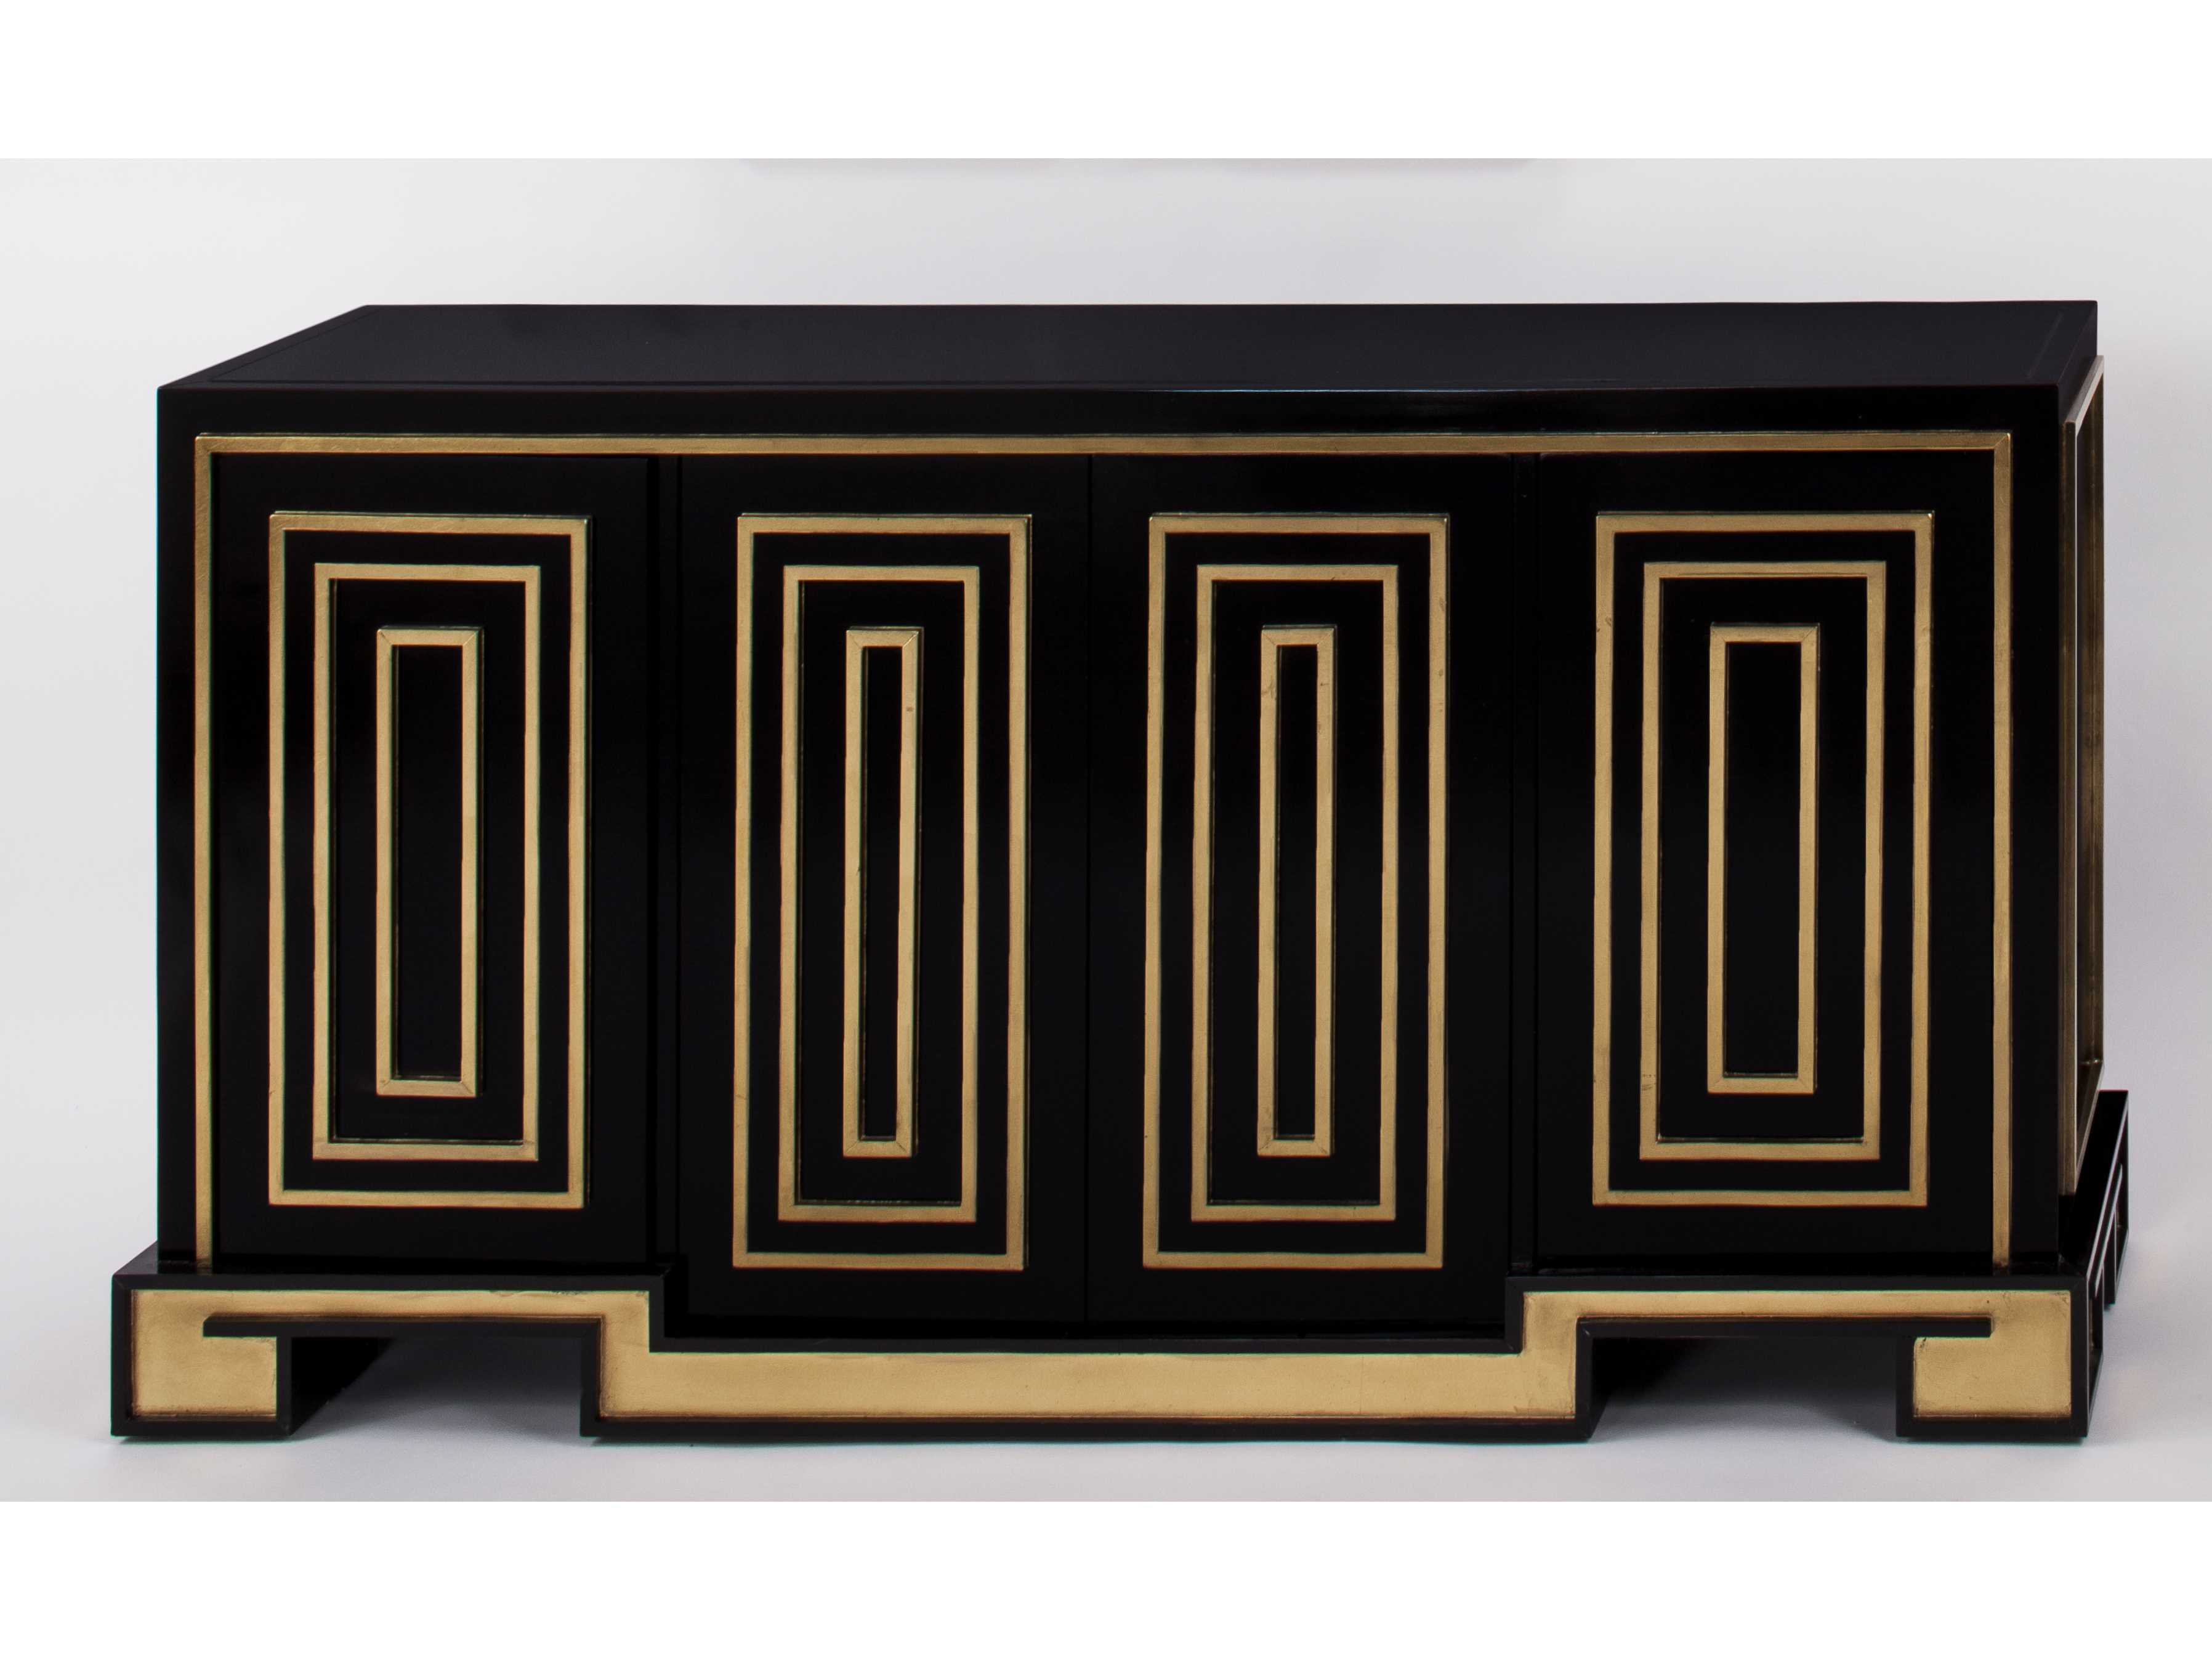 Artmax 63.5 X 34 Gold Leaf & Black Lacquer Credenza Cabinet for Multi Stripe Credenzas (Image 3 of 30)